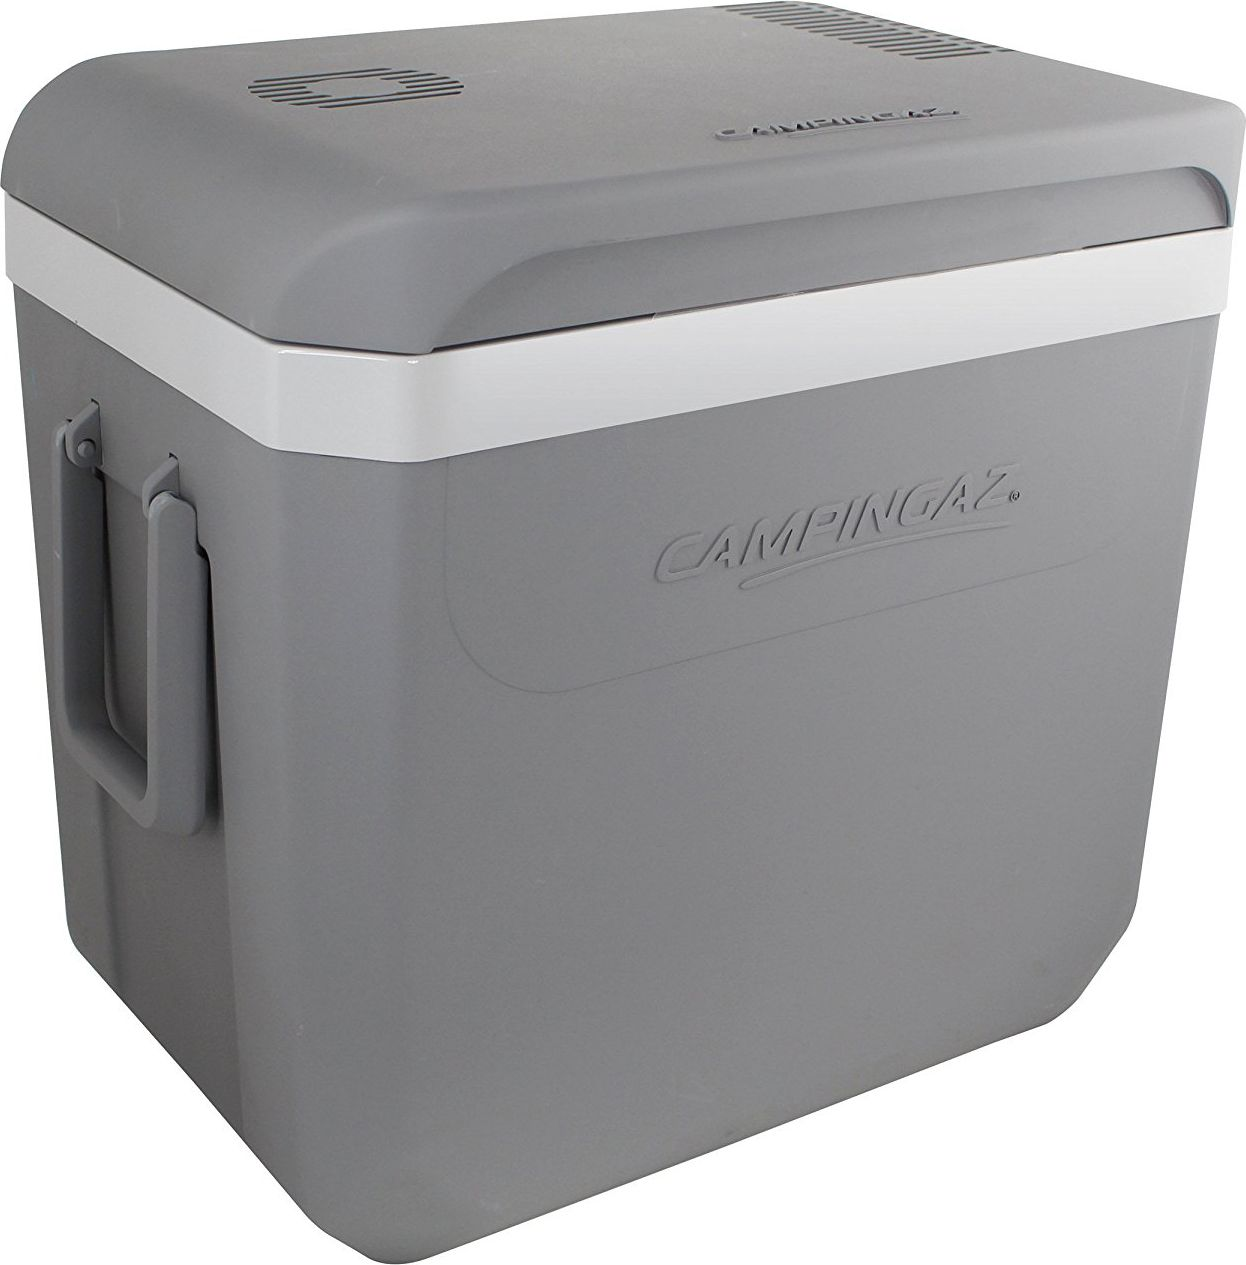 Campingaz Powerbox Plus 24l tourist fridge (052-L0000-2000030252-779)